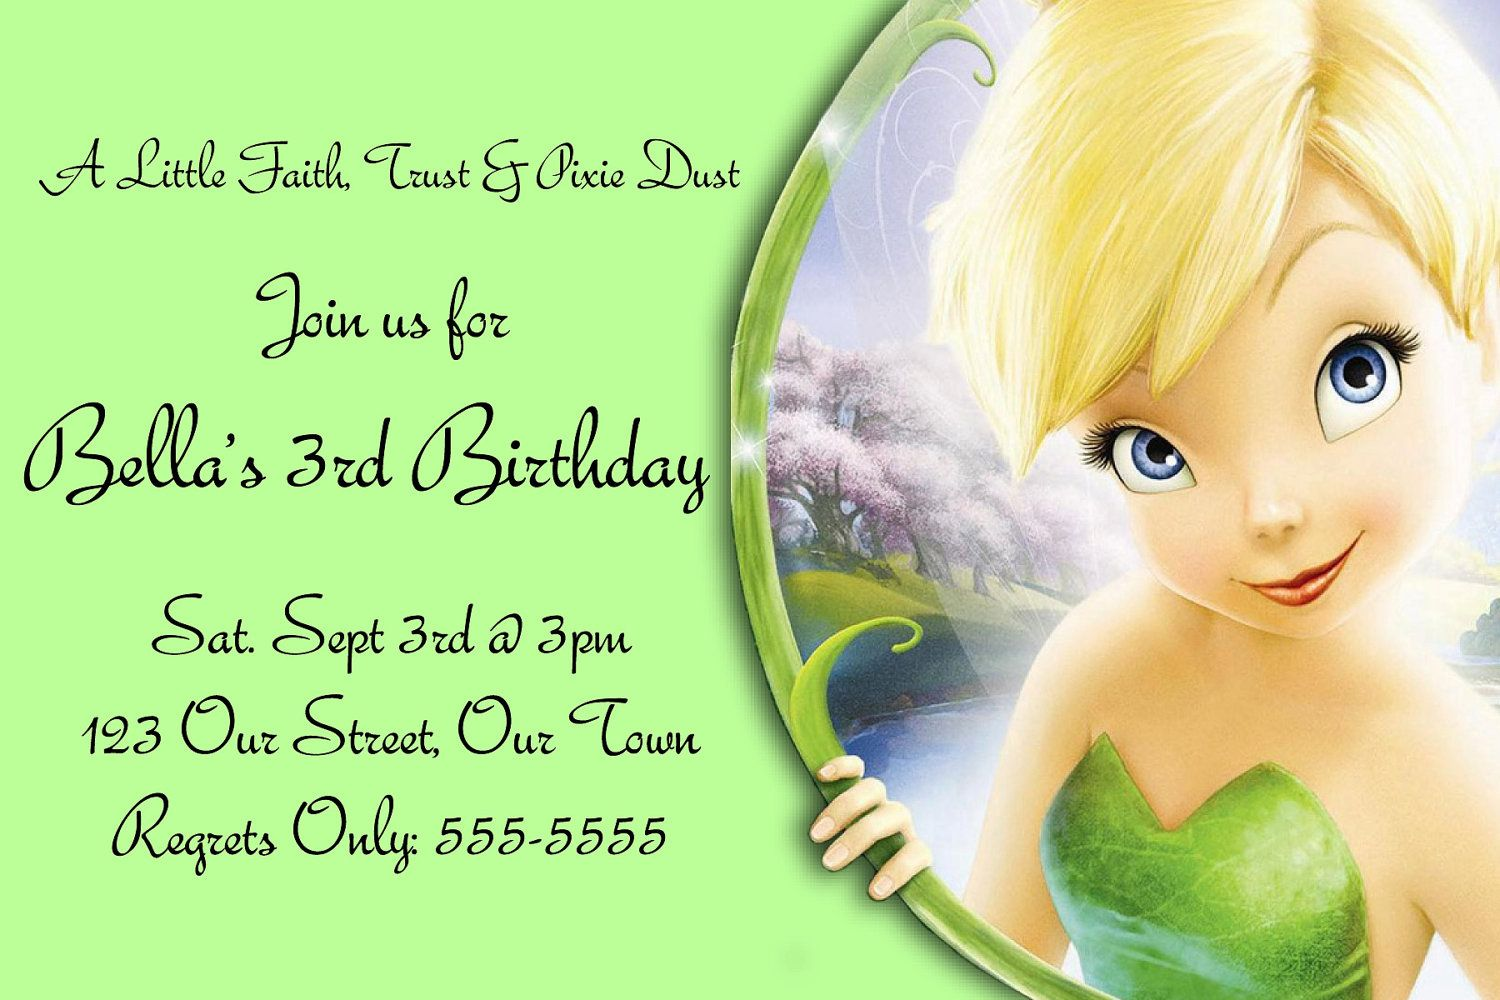 Tinkerbell birthday party invitations printable free invitetown tinkerbell birthday party invitations printable free invitetown stopboris Gallery